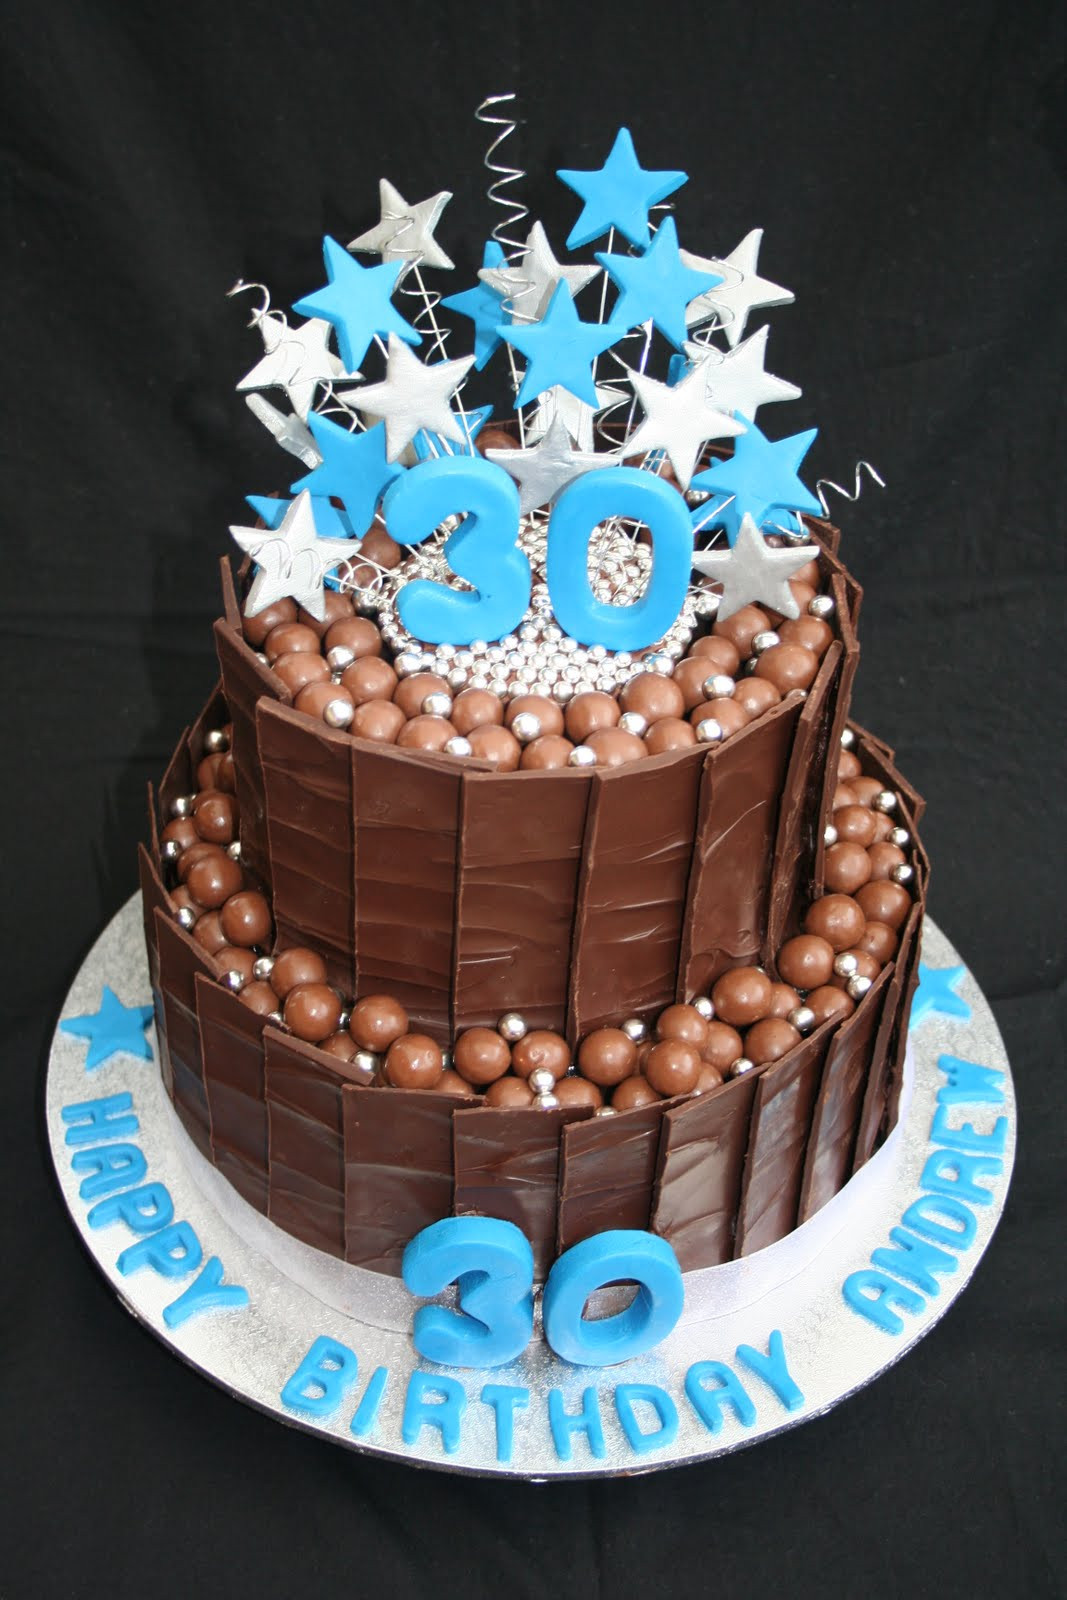 Best ideas about 30th Birthday Cake . Save or Pin Leonie s Cakes and Parties 30th Birthday Cake Now.